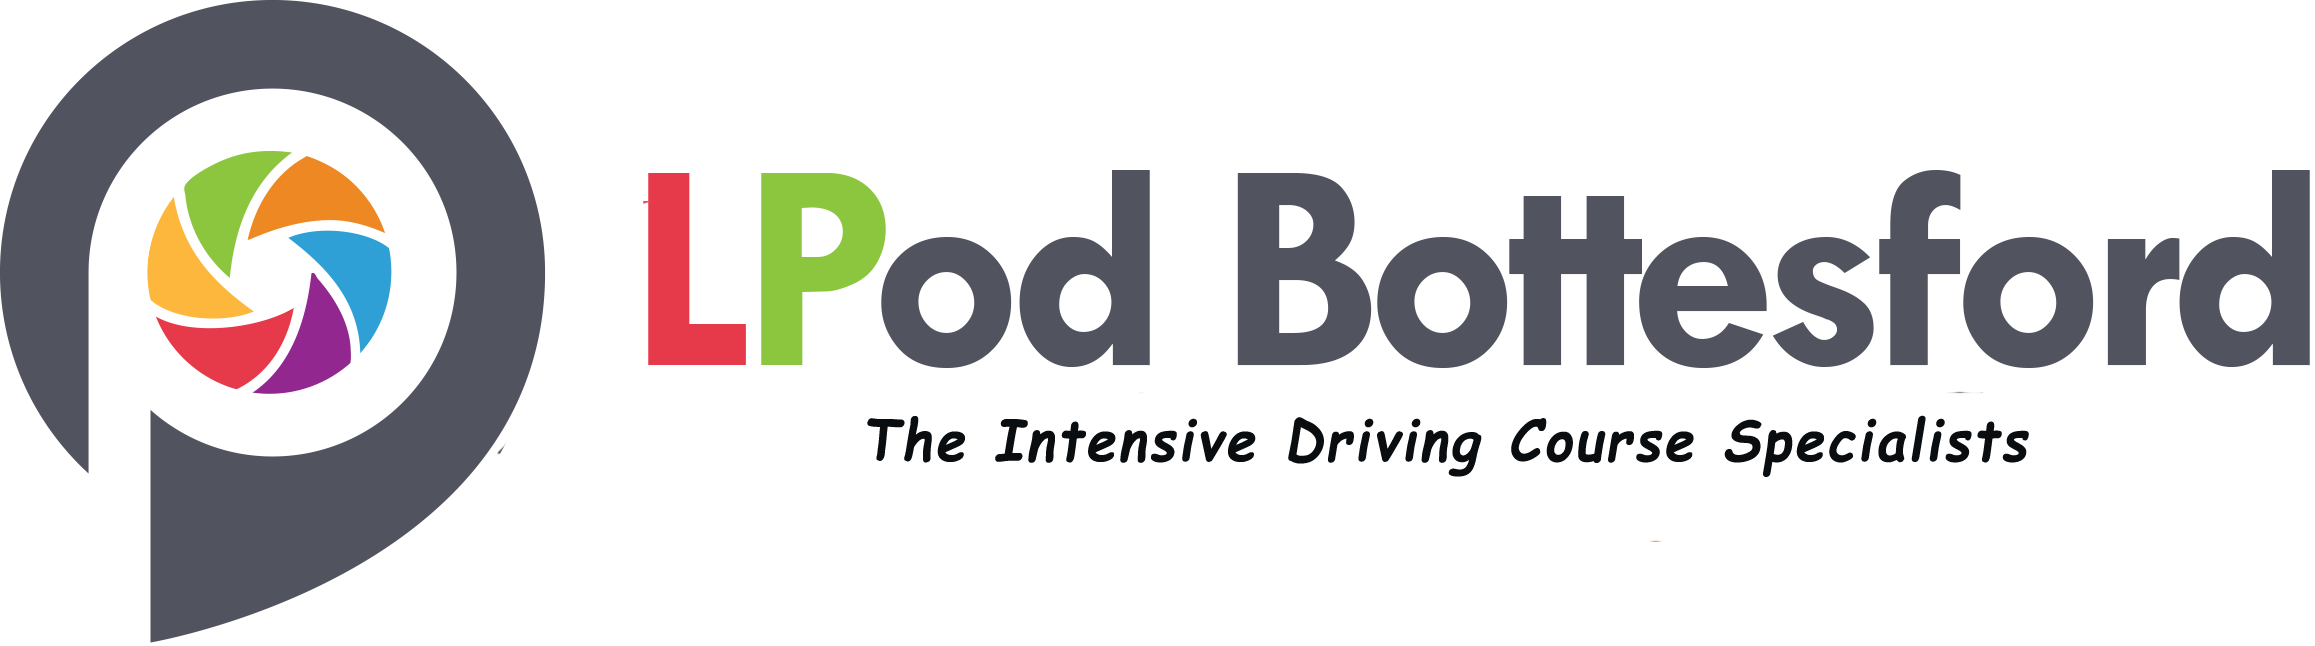 intensive driving courses Bottesford